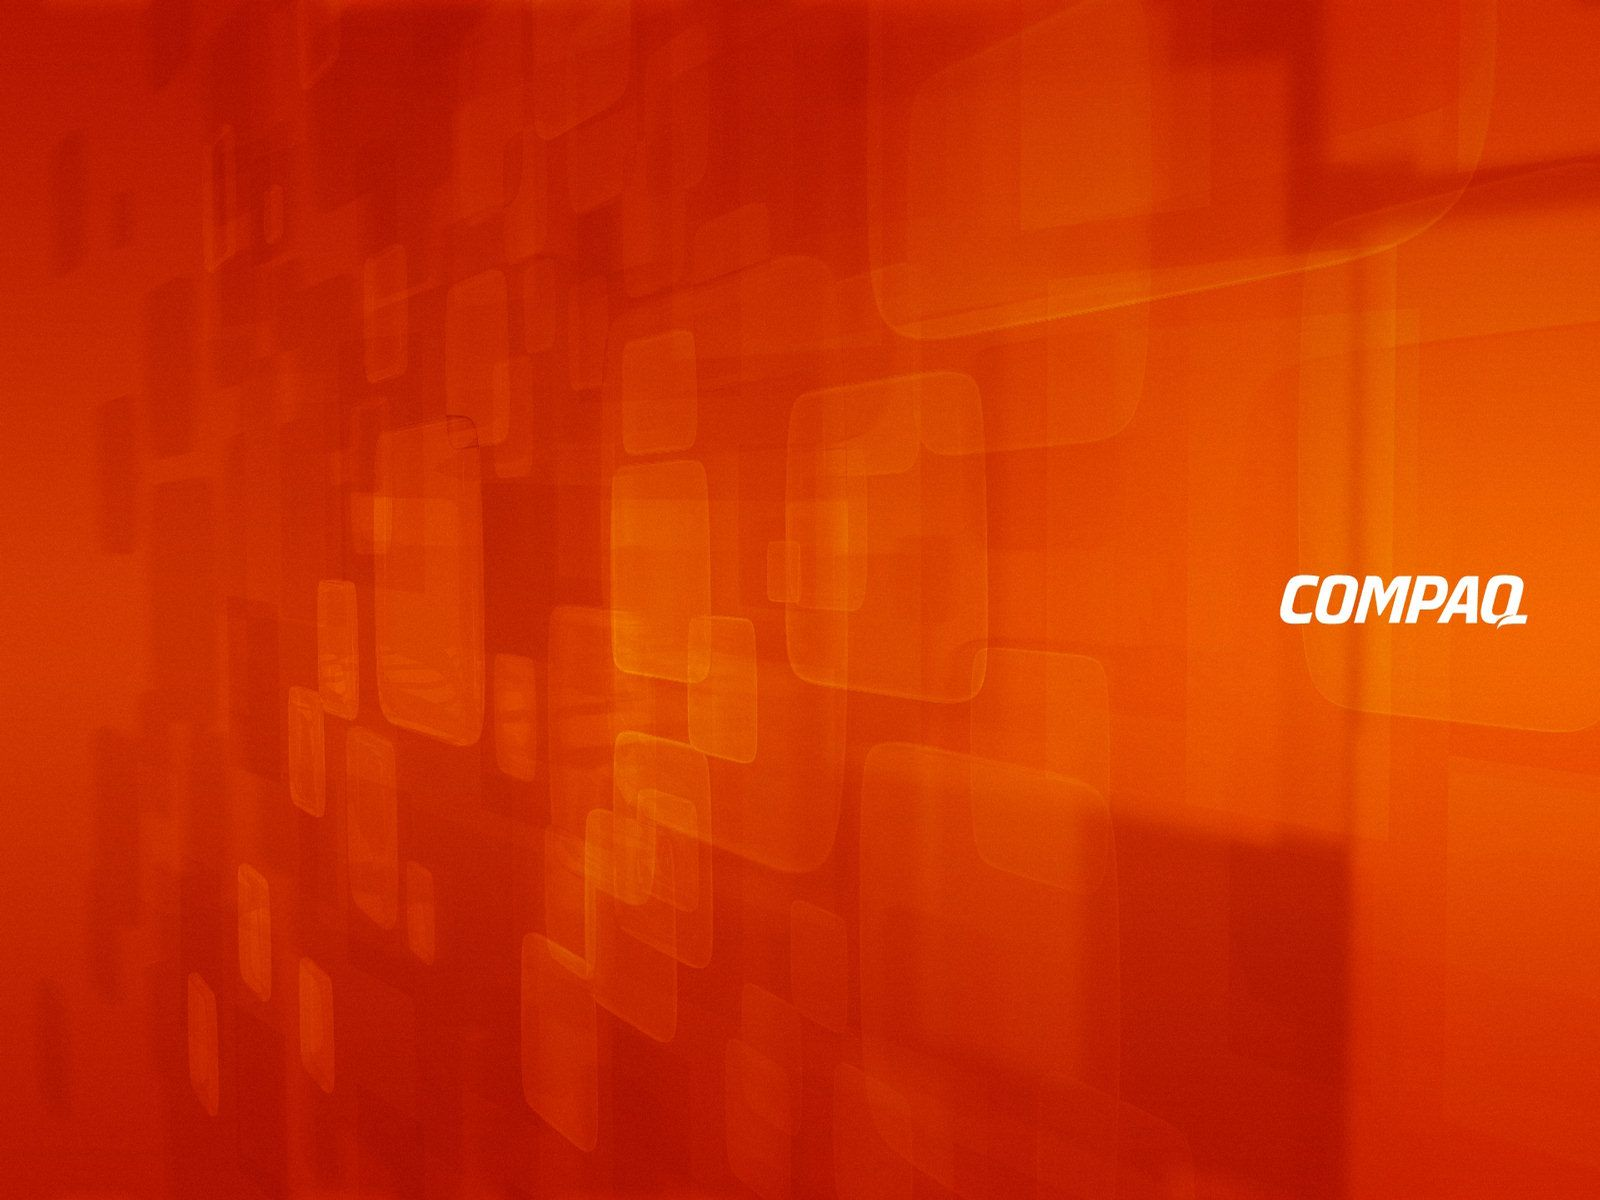 Orange Compaq Wallpaper rouge et orange Fonds d'écran